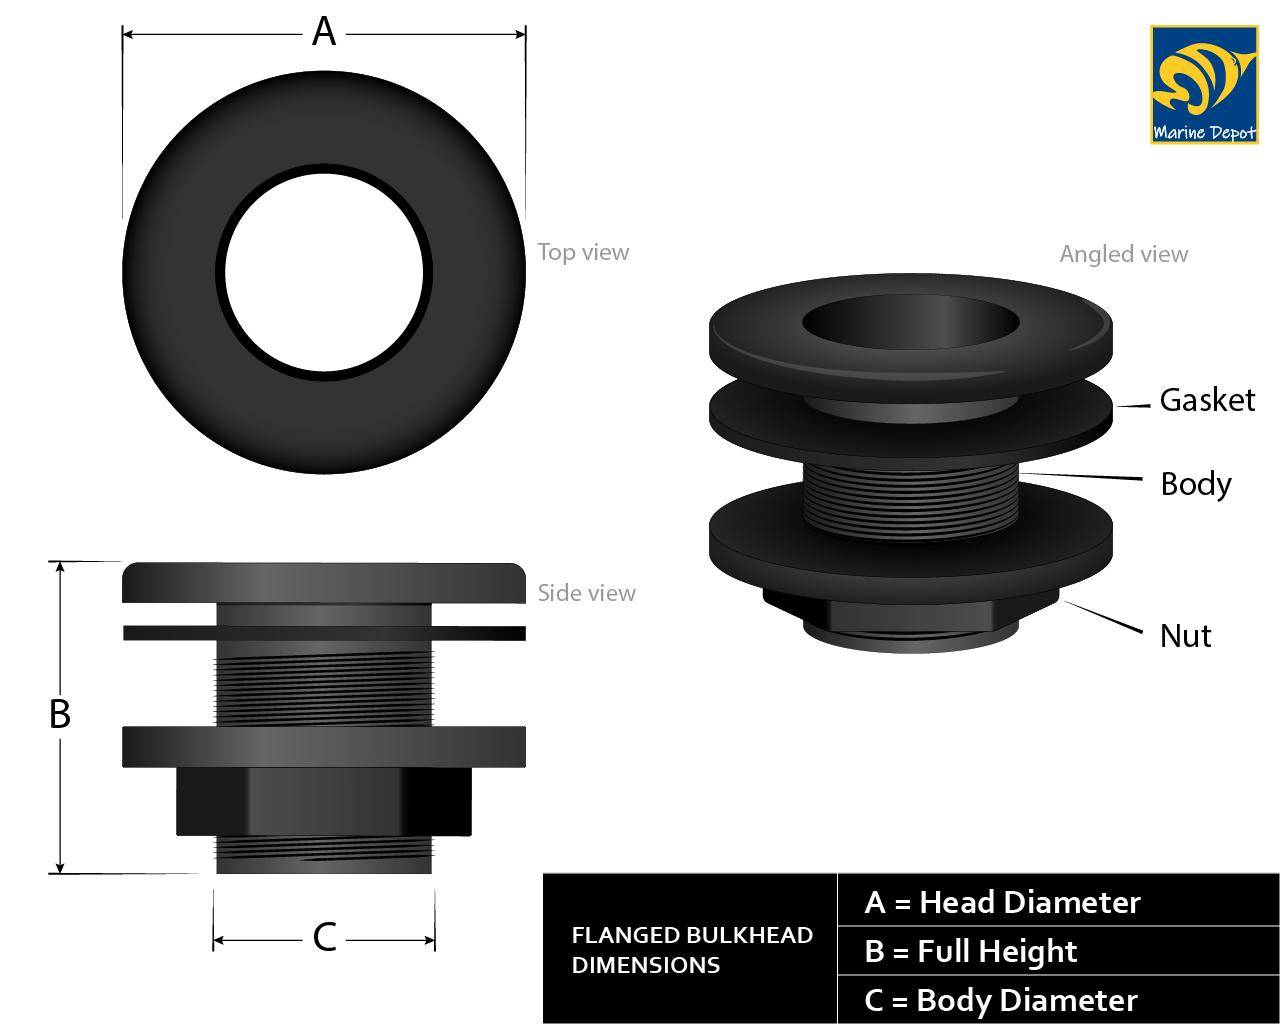 diagram of dimensions of bulkhead fittings to consider when installing them